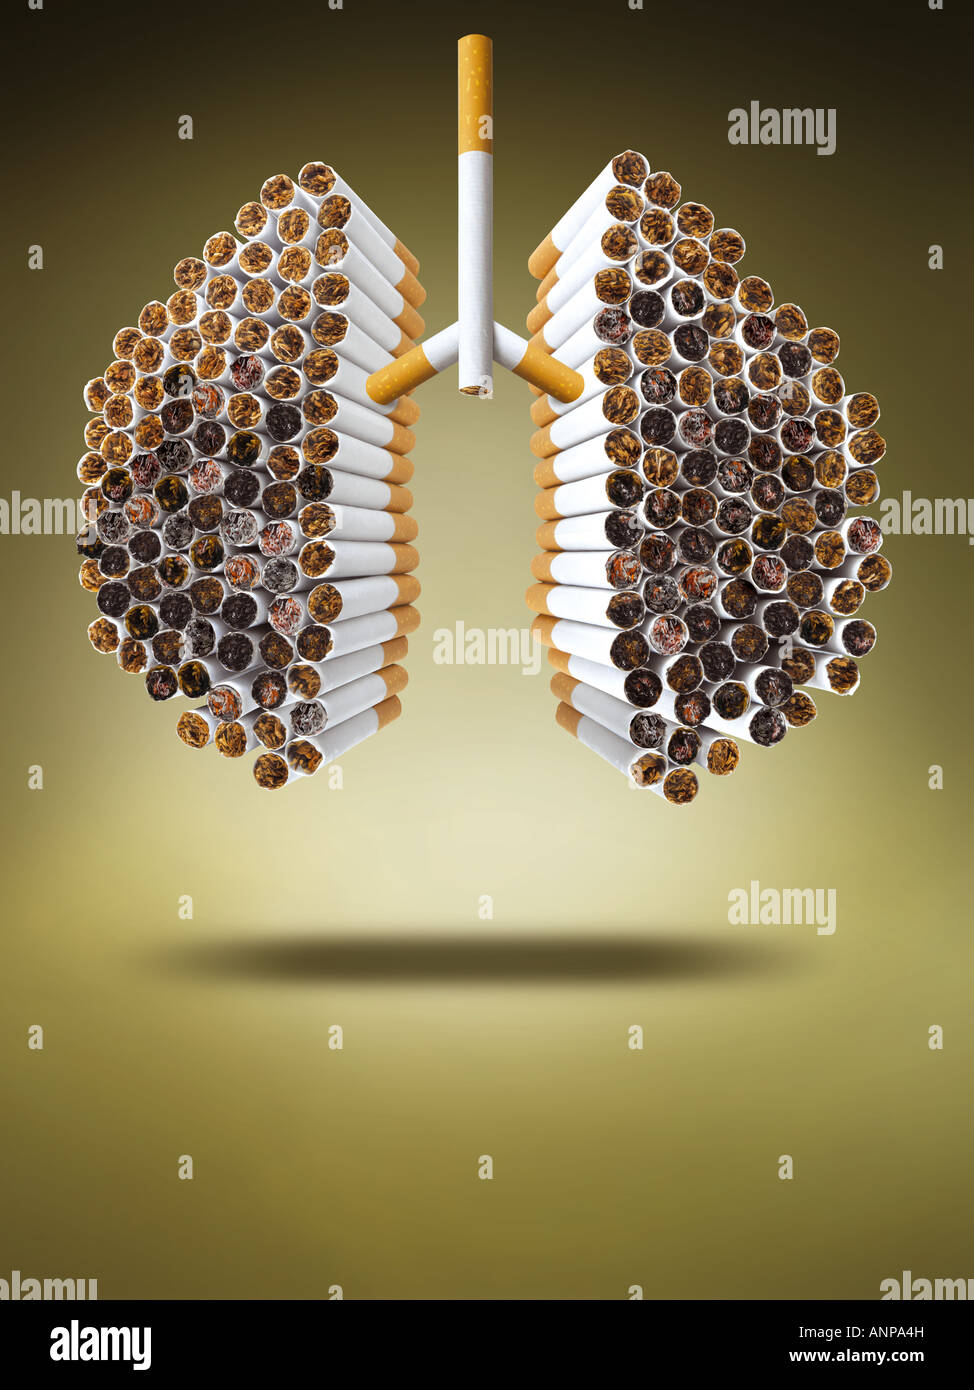 Lung made of cigarettes - Stock Image